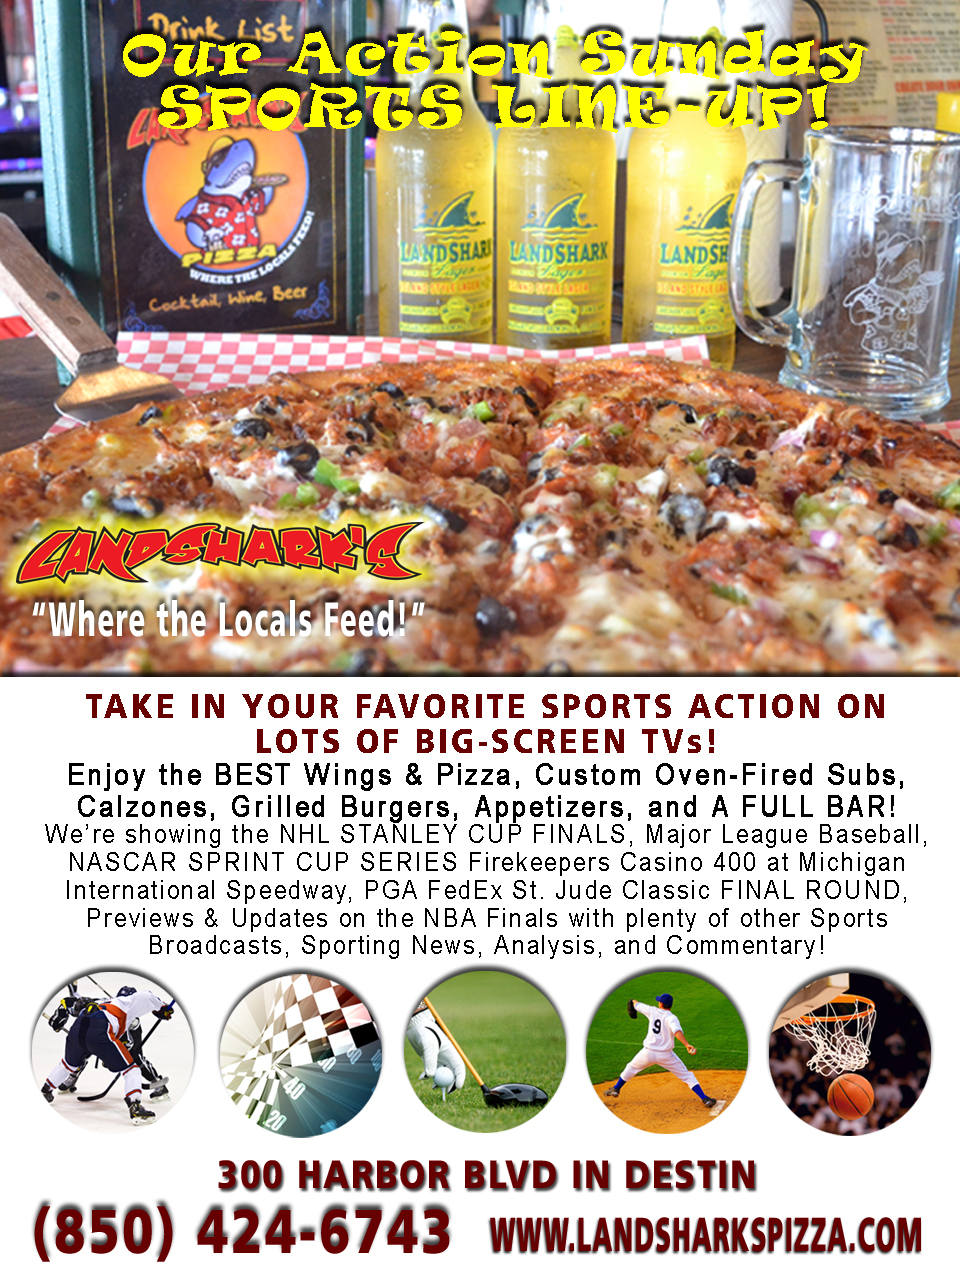 Destin Sports Restaurant Bar Sports TV Landsharks Pizza